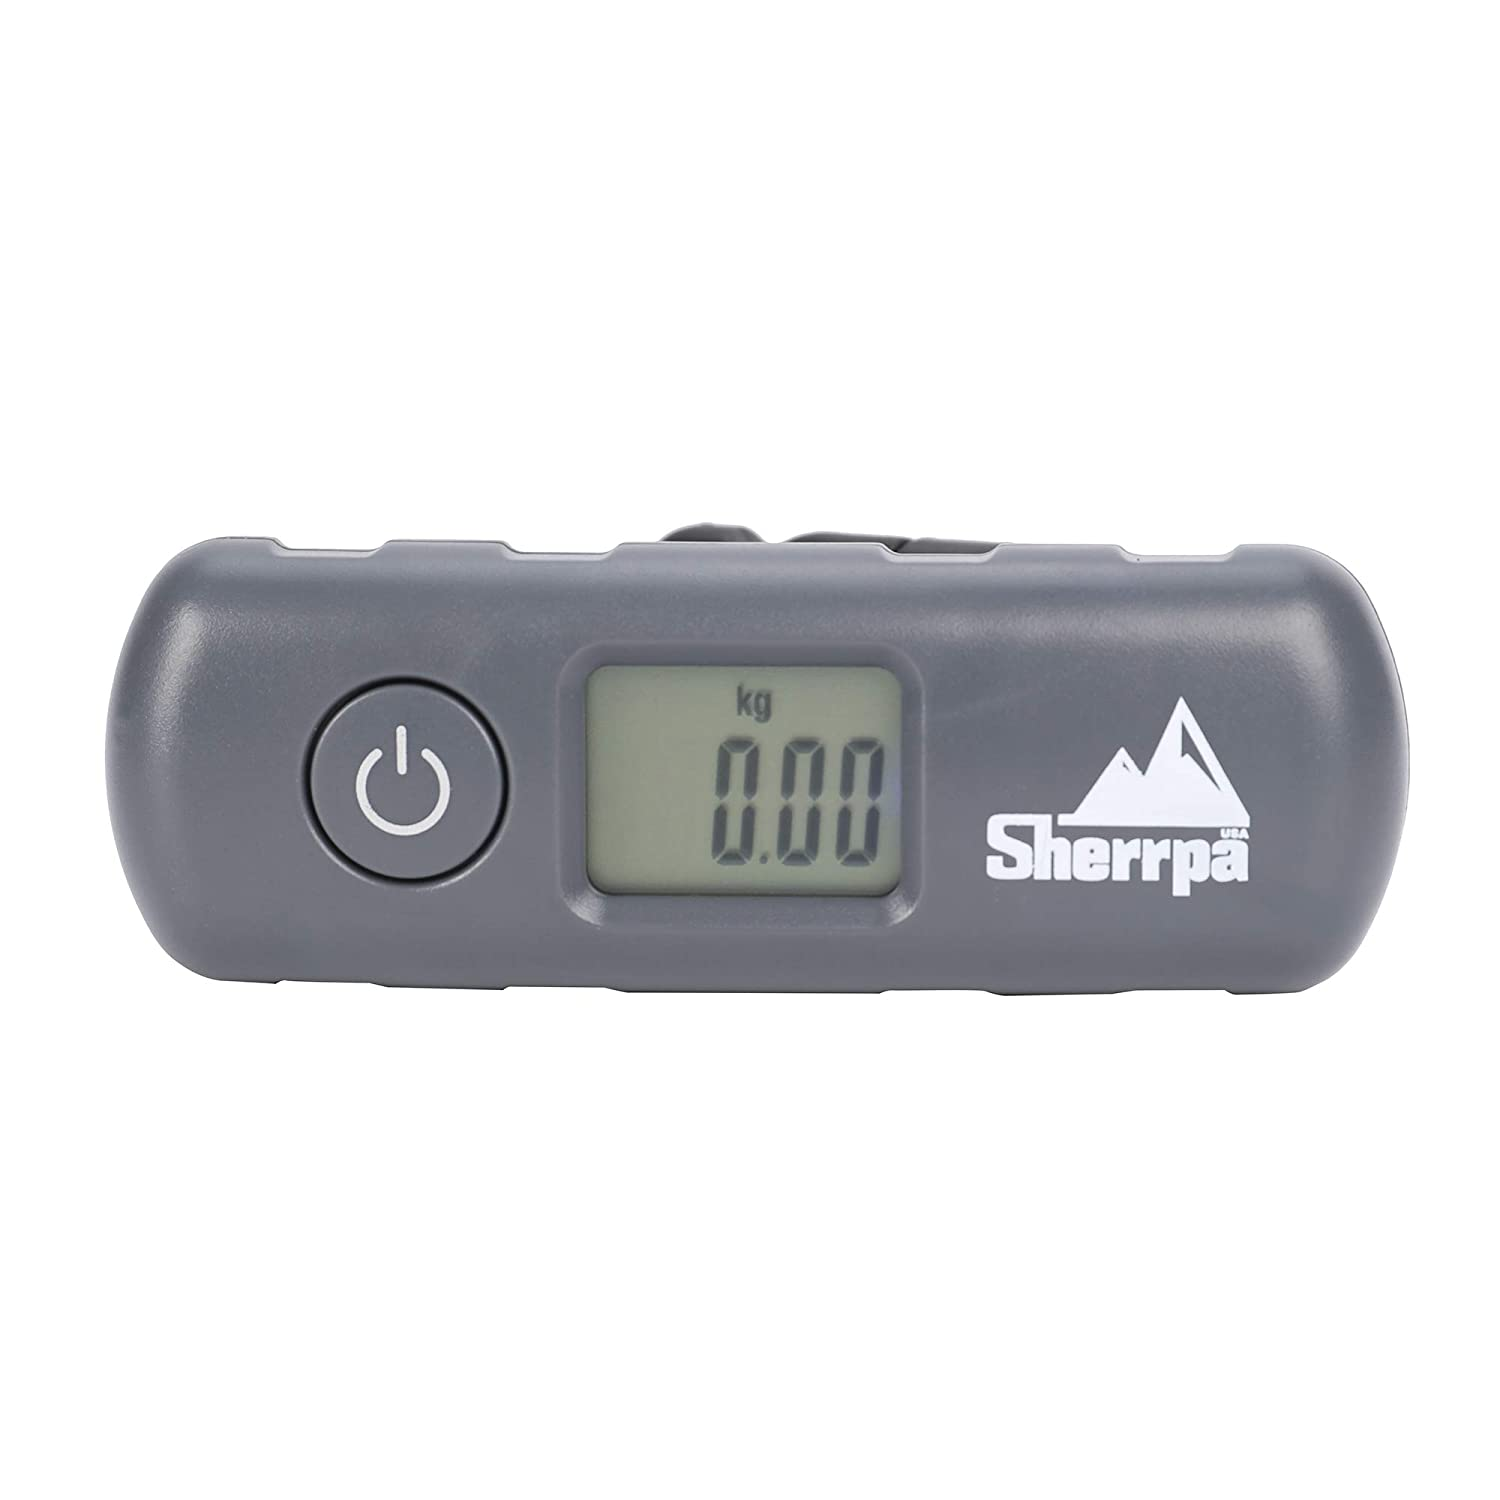 Sherrpa Travel Luggage Digital Scale Black 50 kg Electronic Suitcase Weighting Scale 110 lb